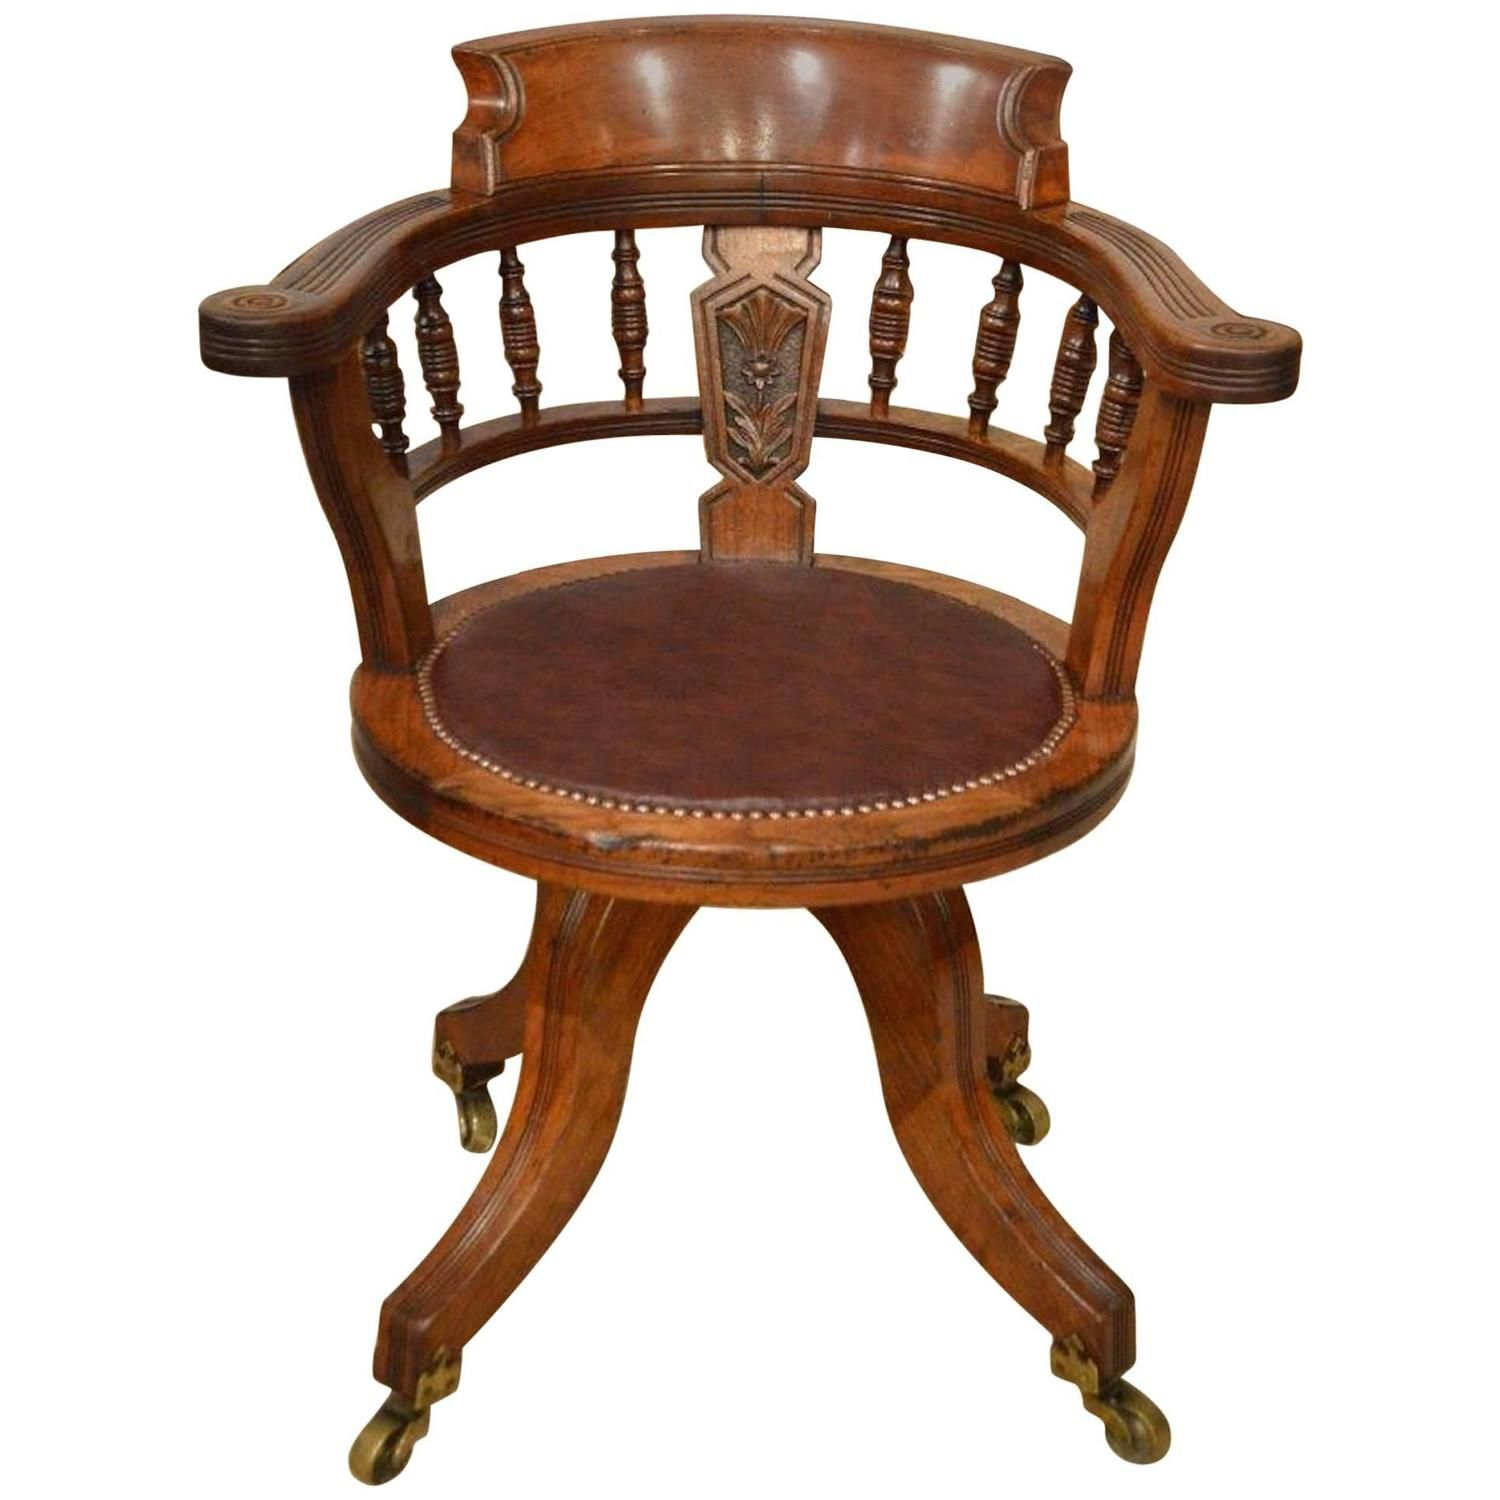 Walnut Victorian Period Revolving Desk Chair | From a unique collection of antique and modern armchairs at…